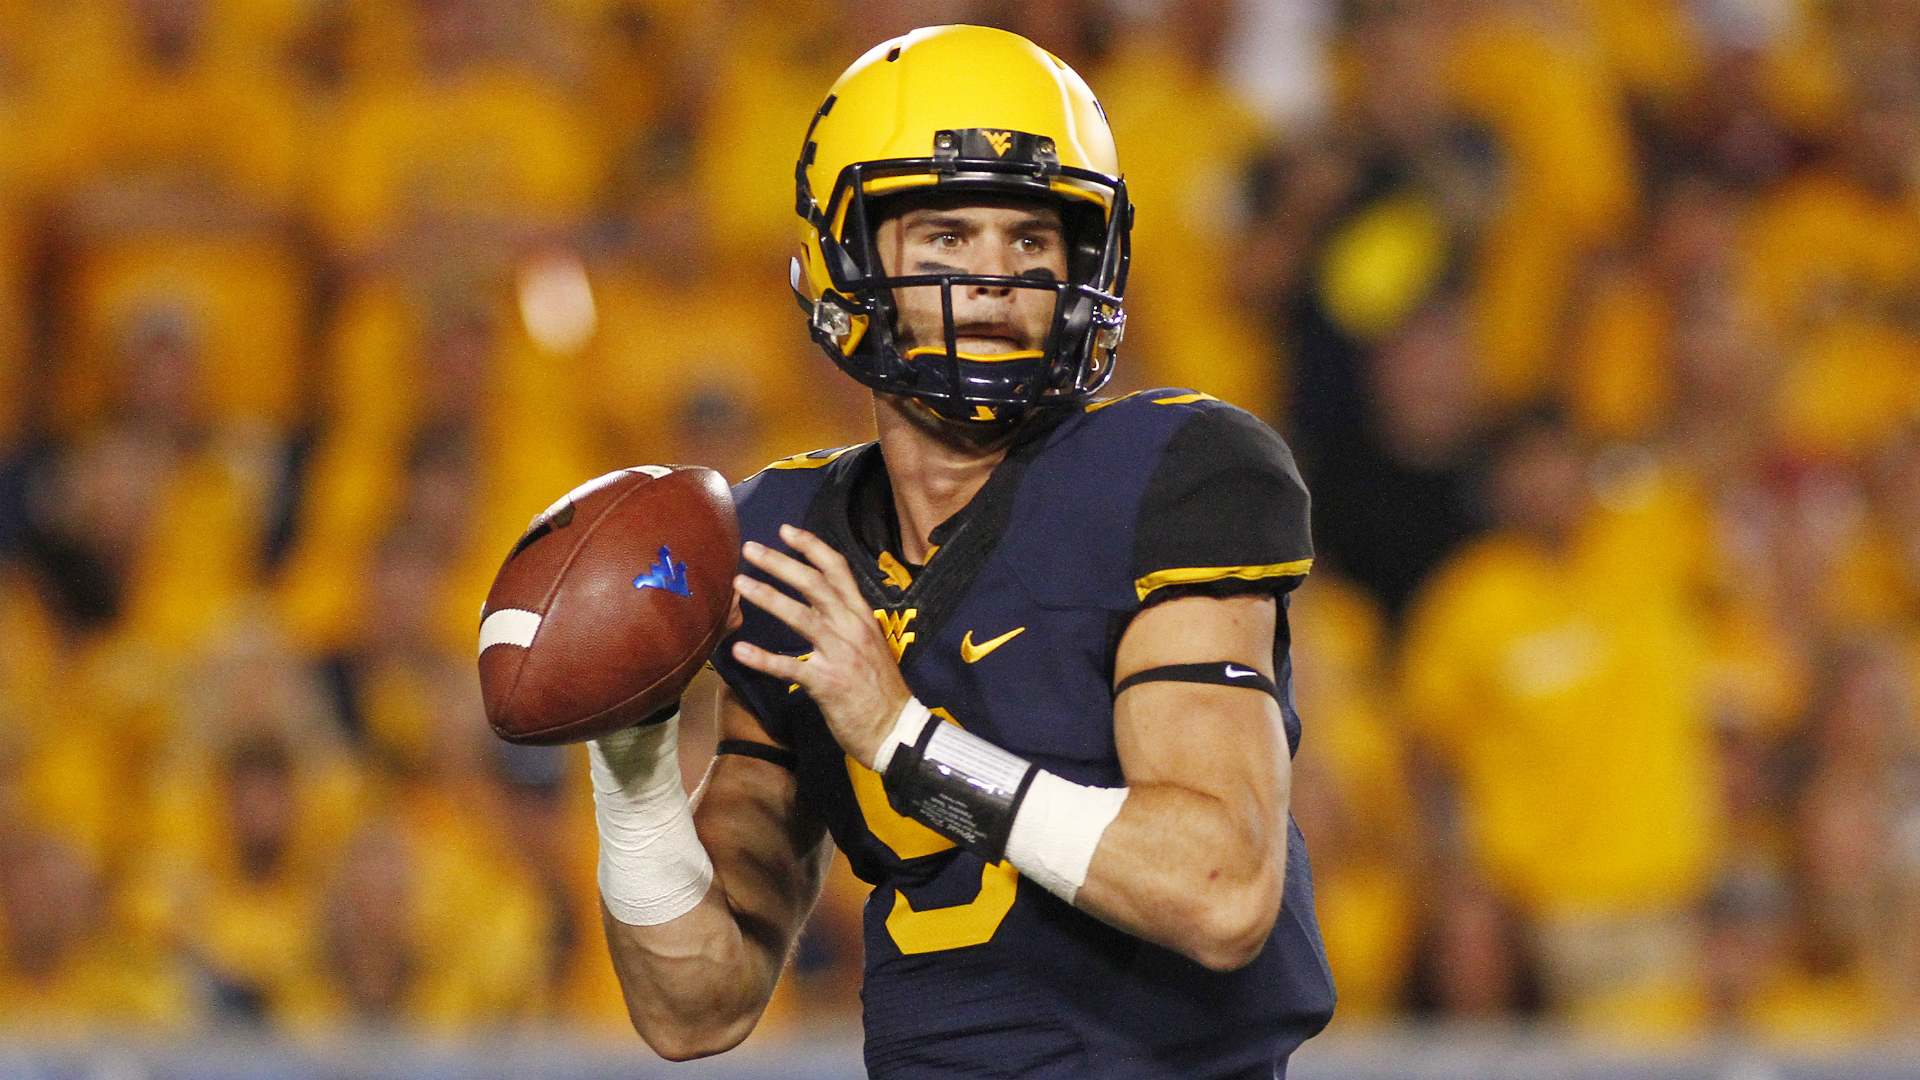 College football opening line report – Bettors make West Virginia home favorite over Kansas State